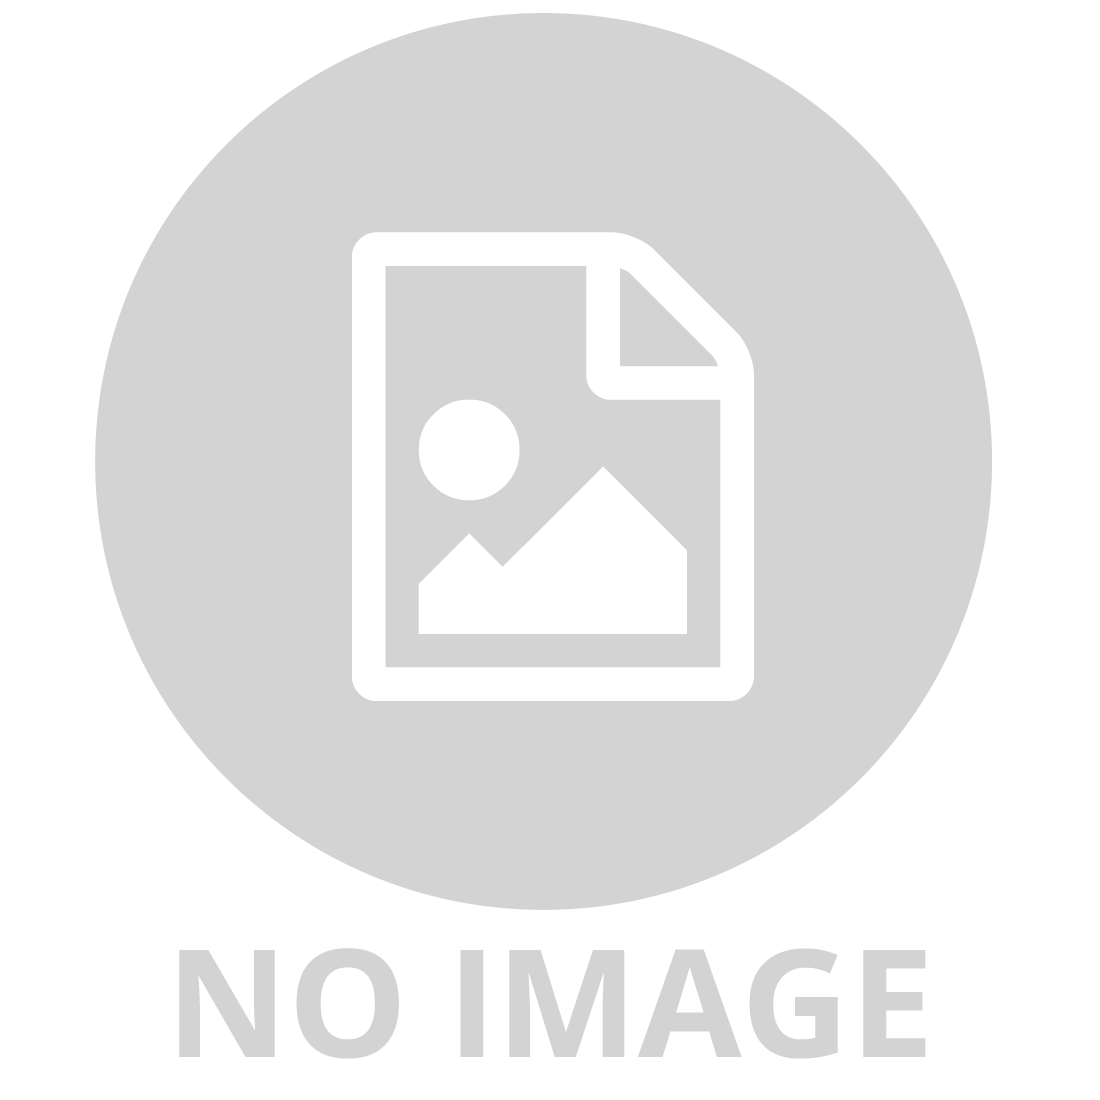 HAMA SMALL BLISTER PACK 450 BEADS - WHITE SQUARE